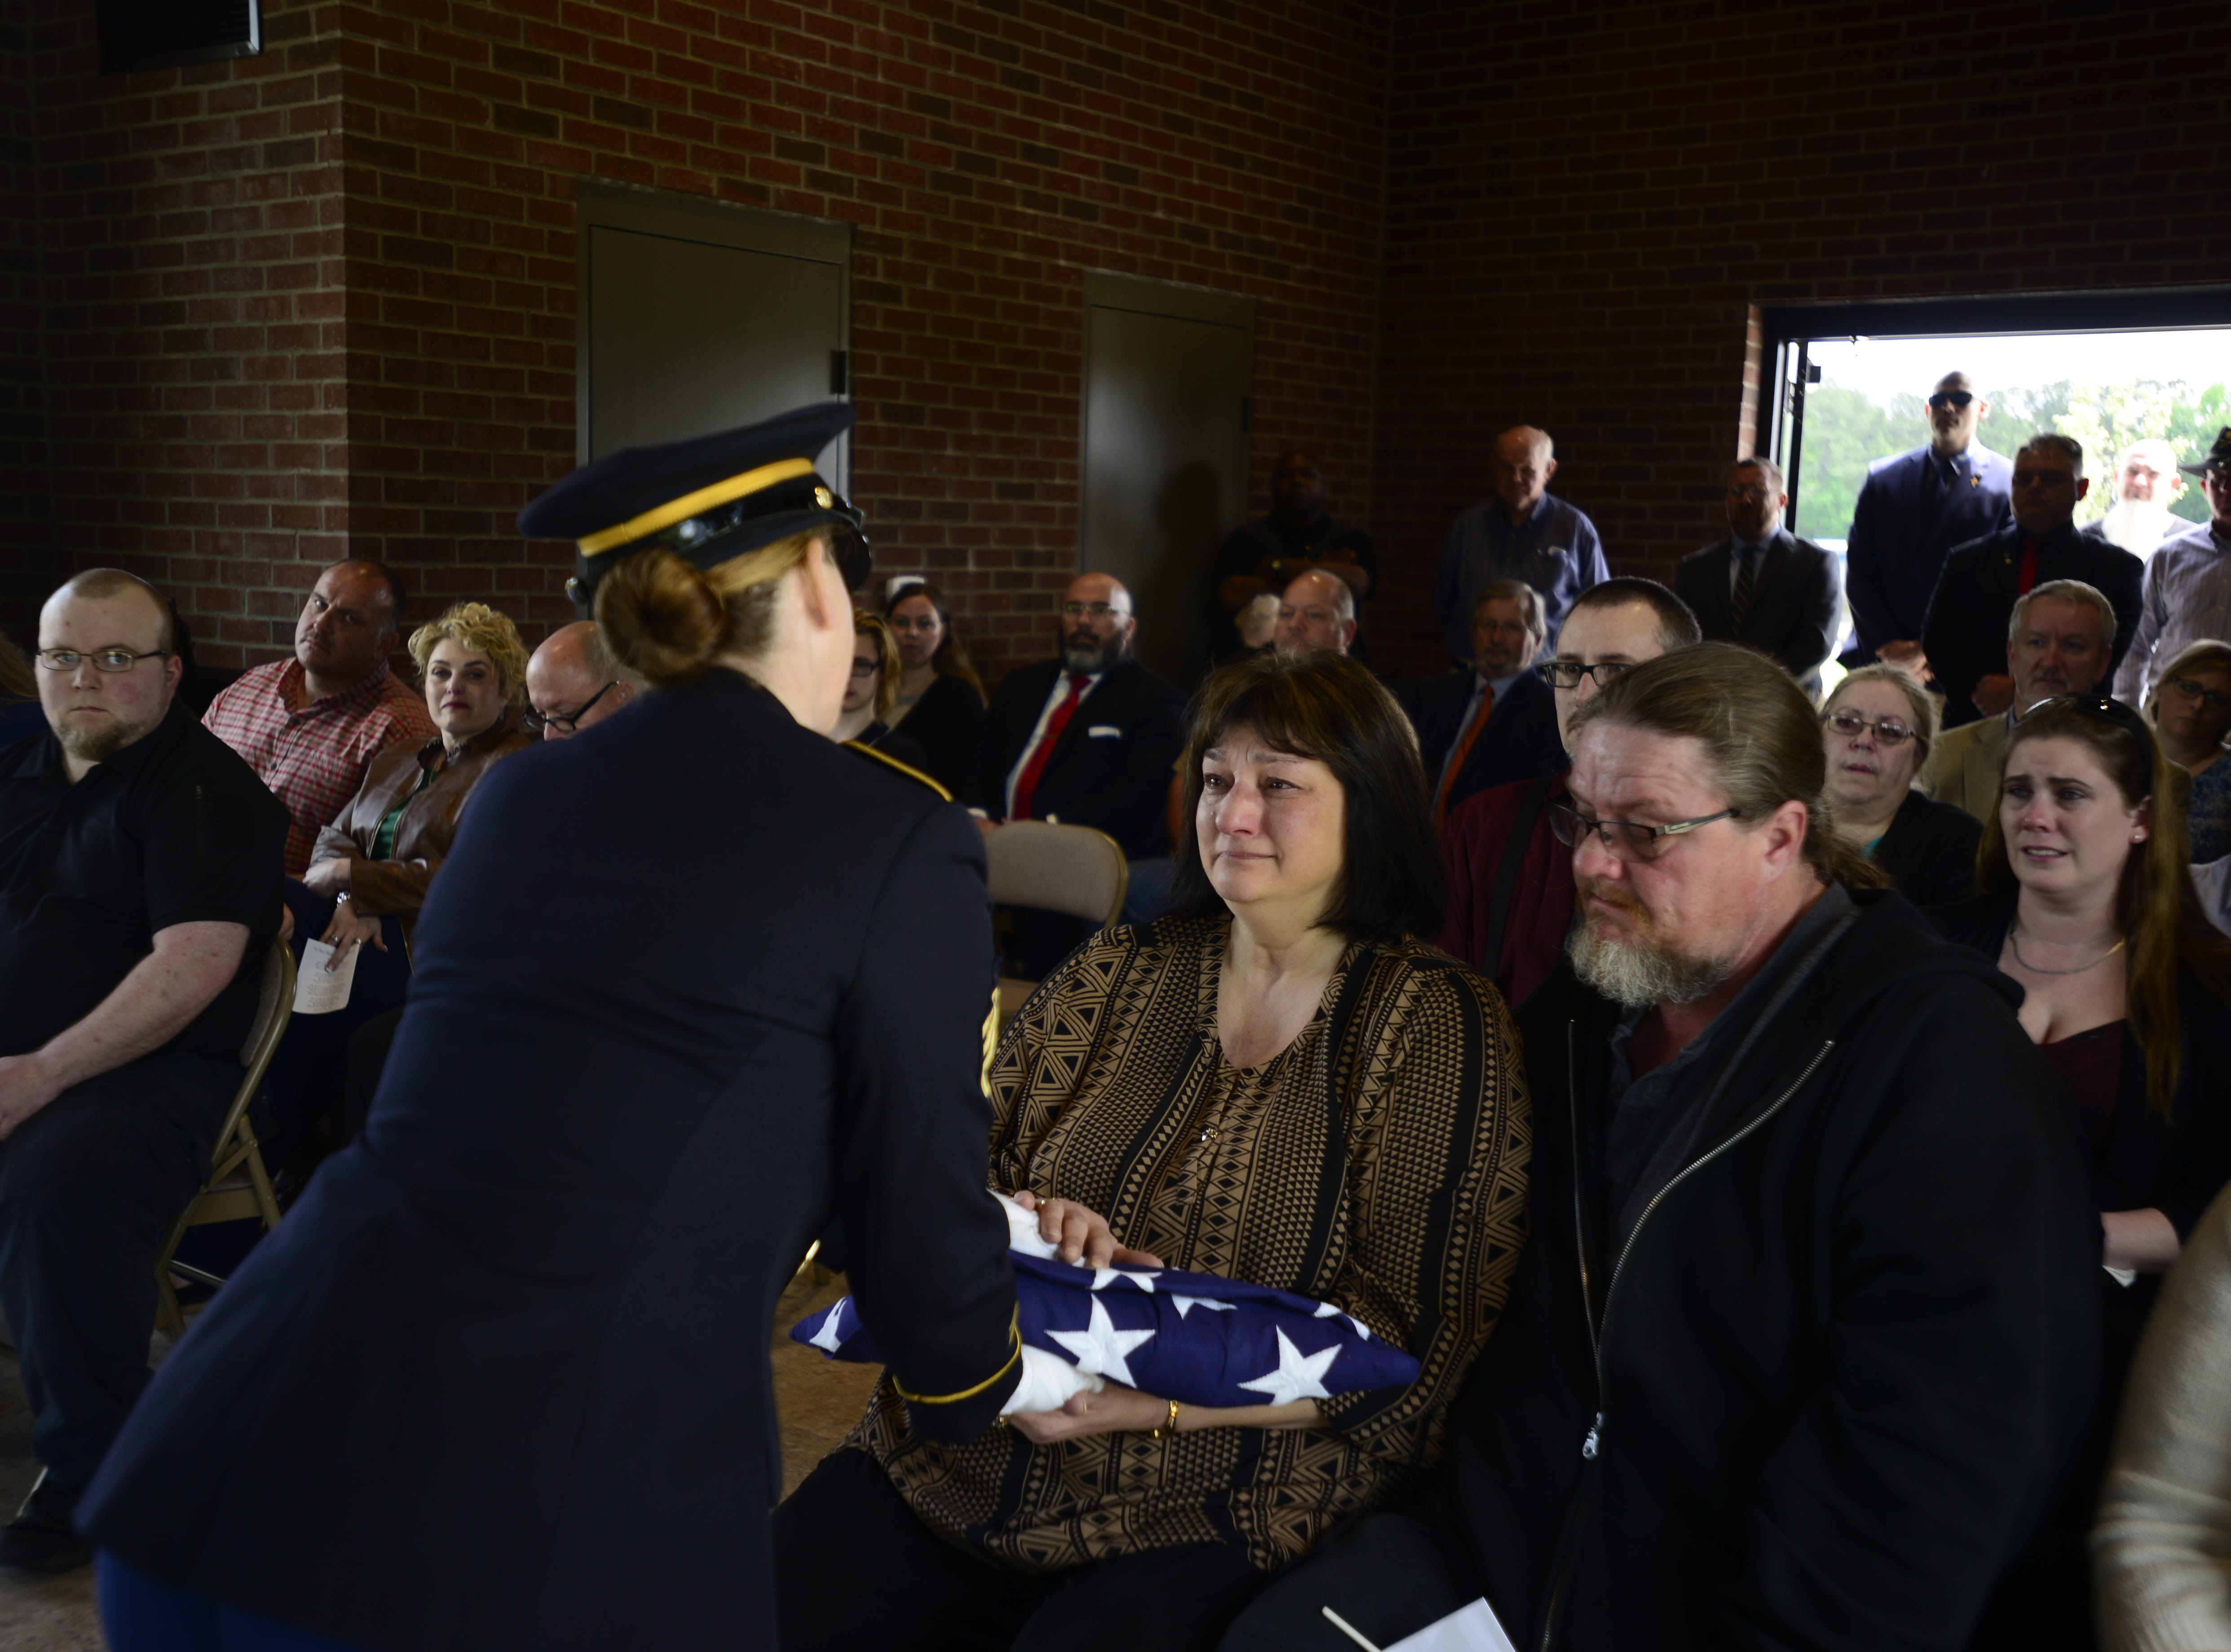 A soldier presents a flag to one of Robert Martin's sisters during his funeral service.